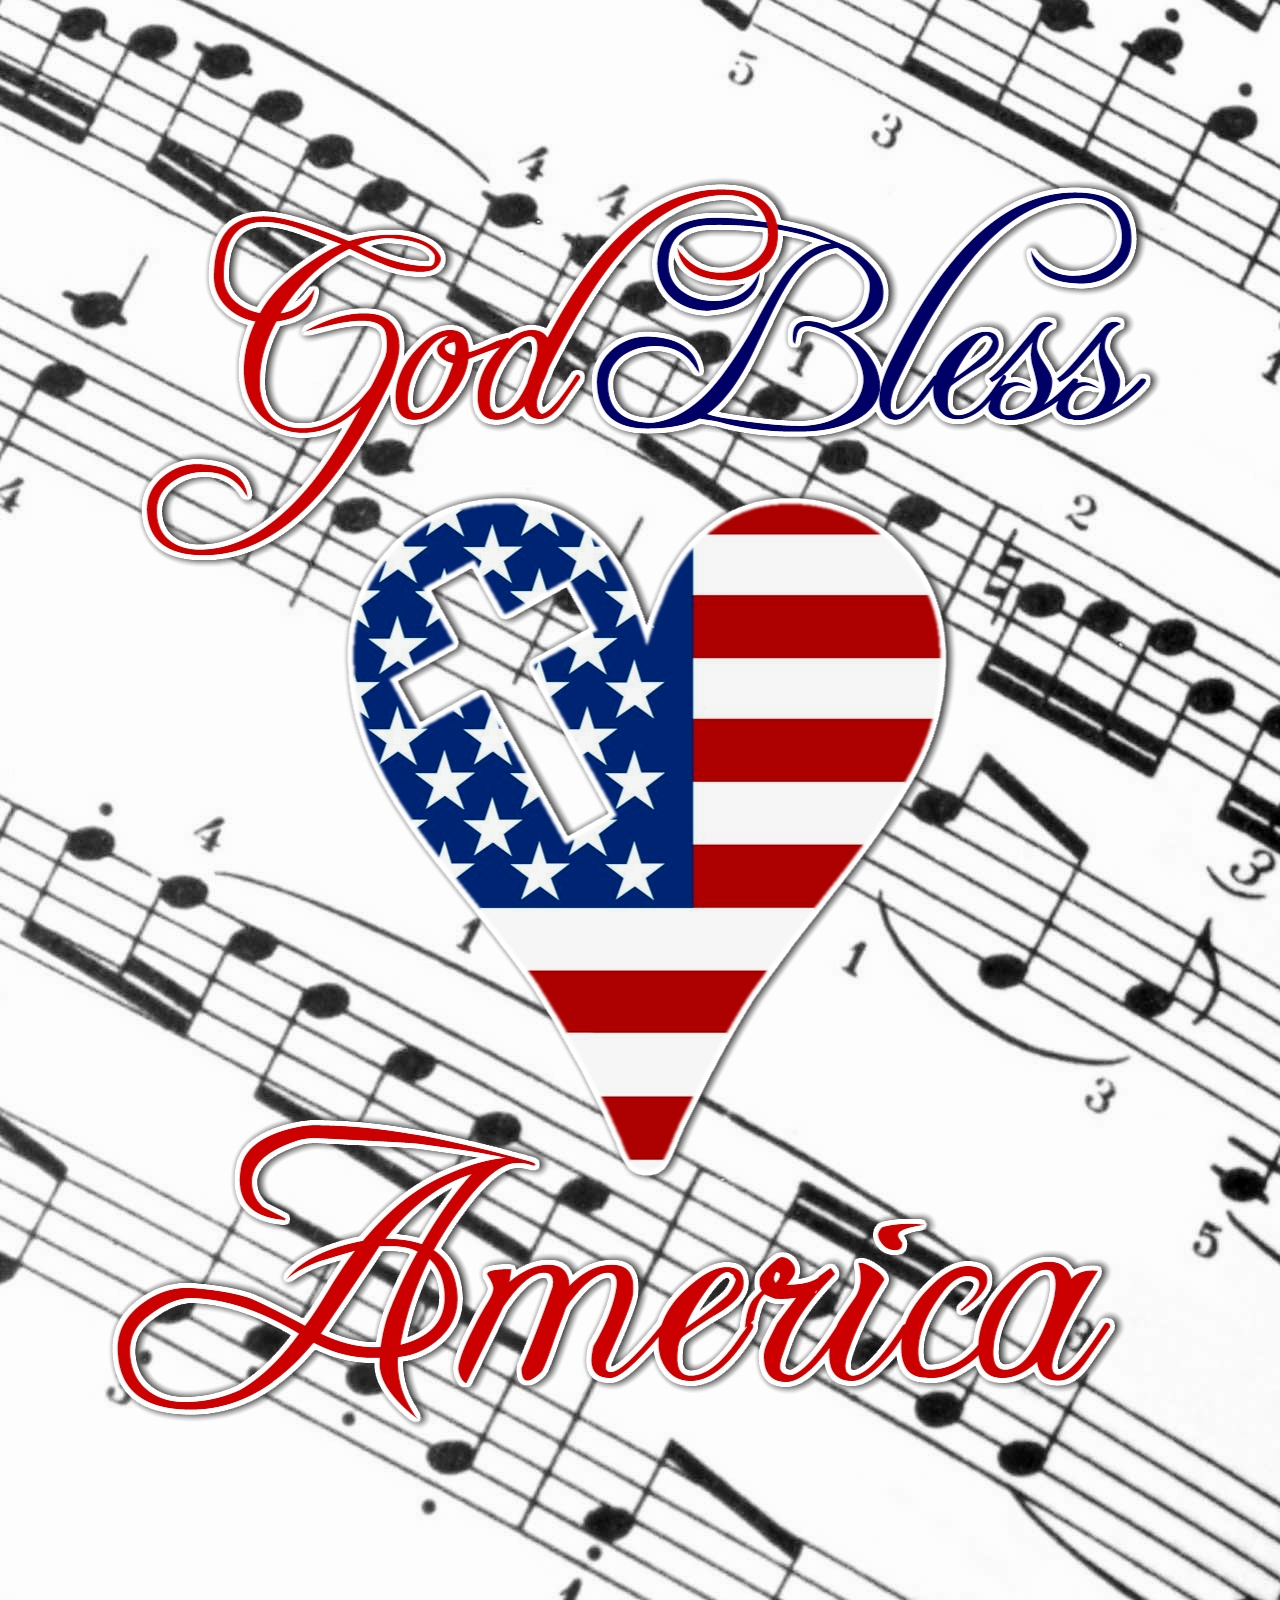 God bless america and you super tuesday vue westfield